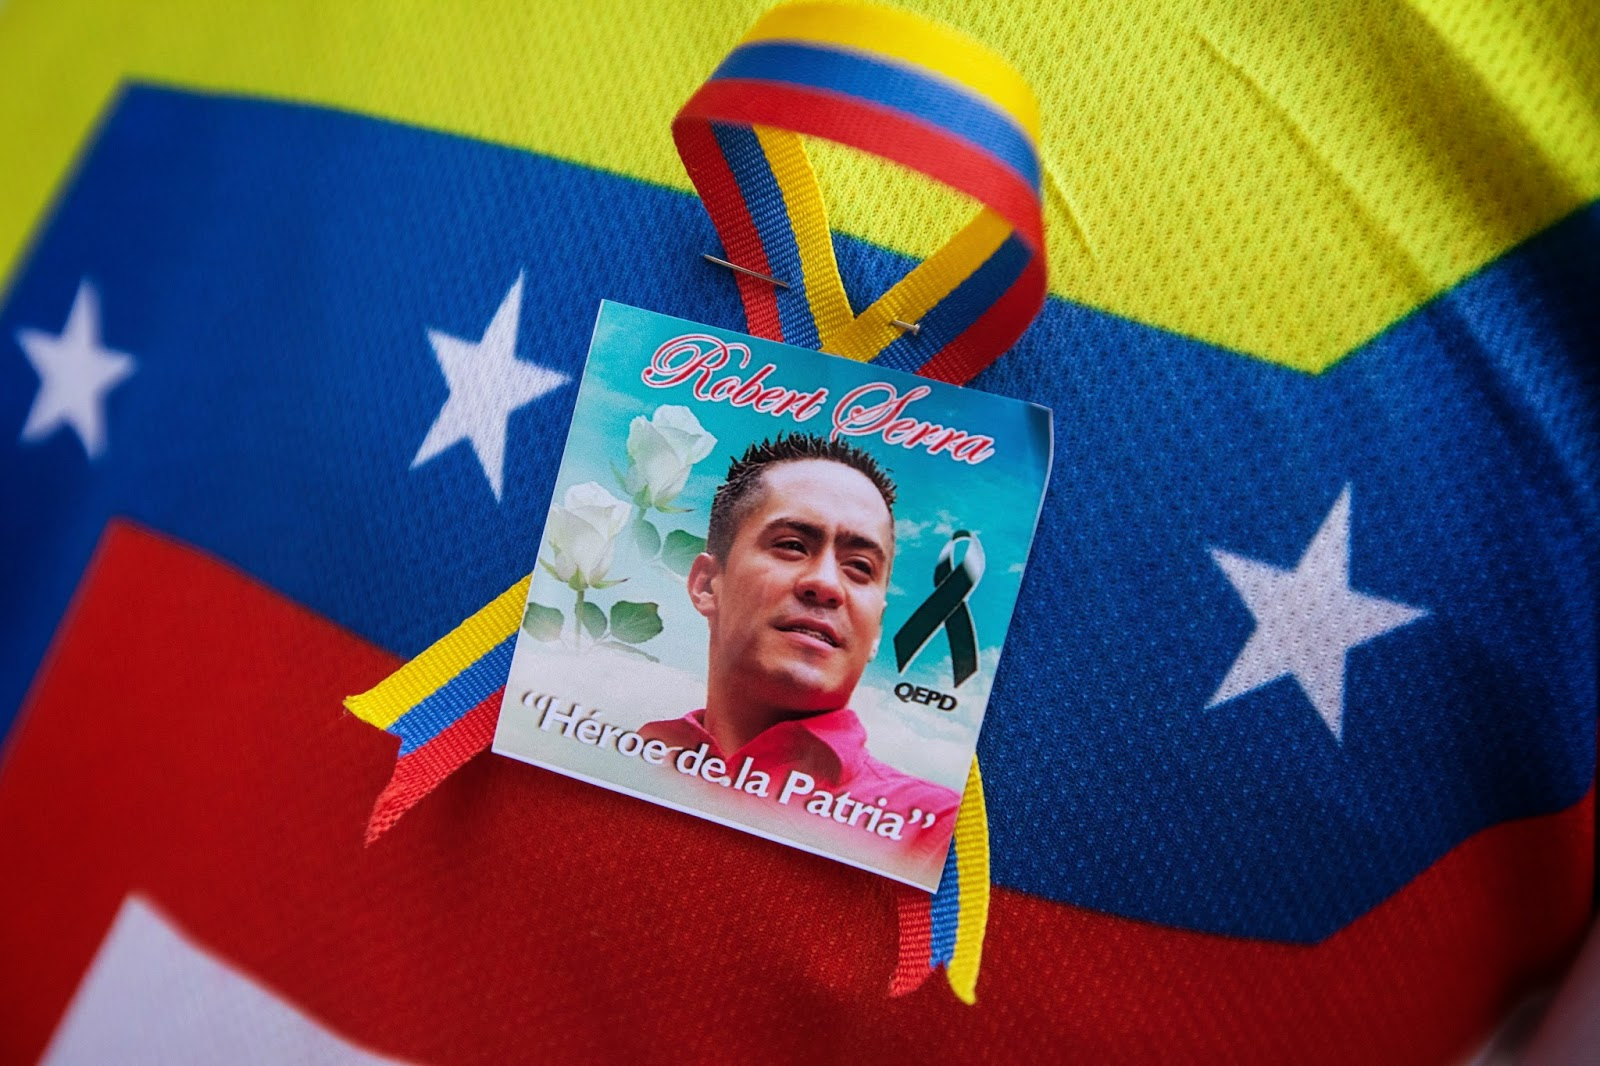 Evidence suggests Colombian Paramilitaries were involved in the assassination of Robert Serra